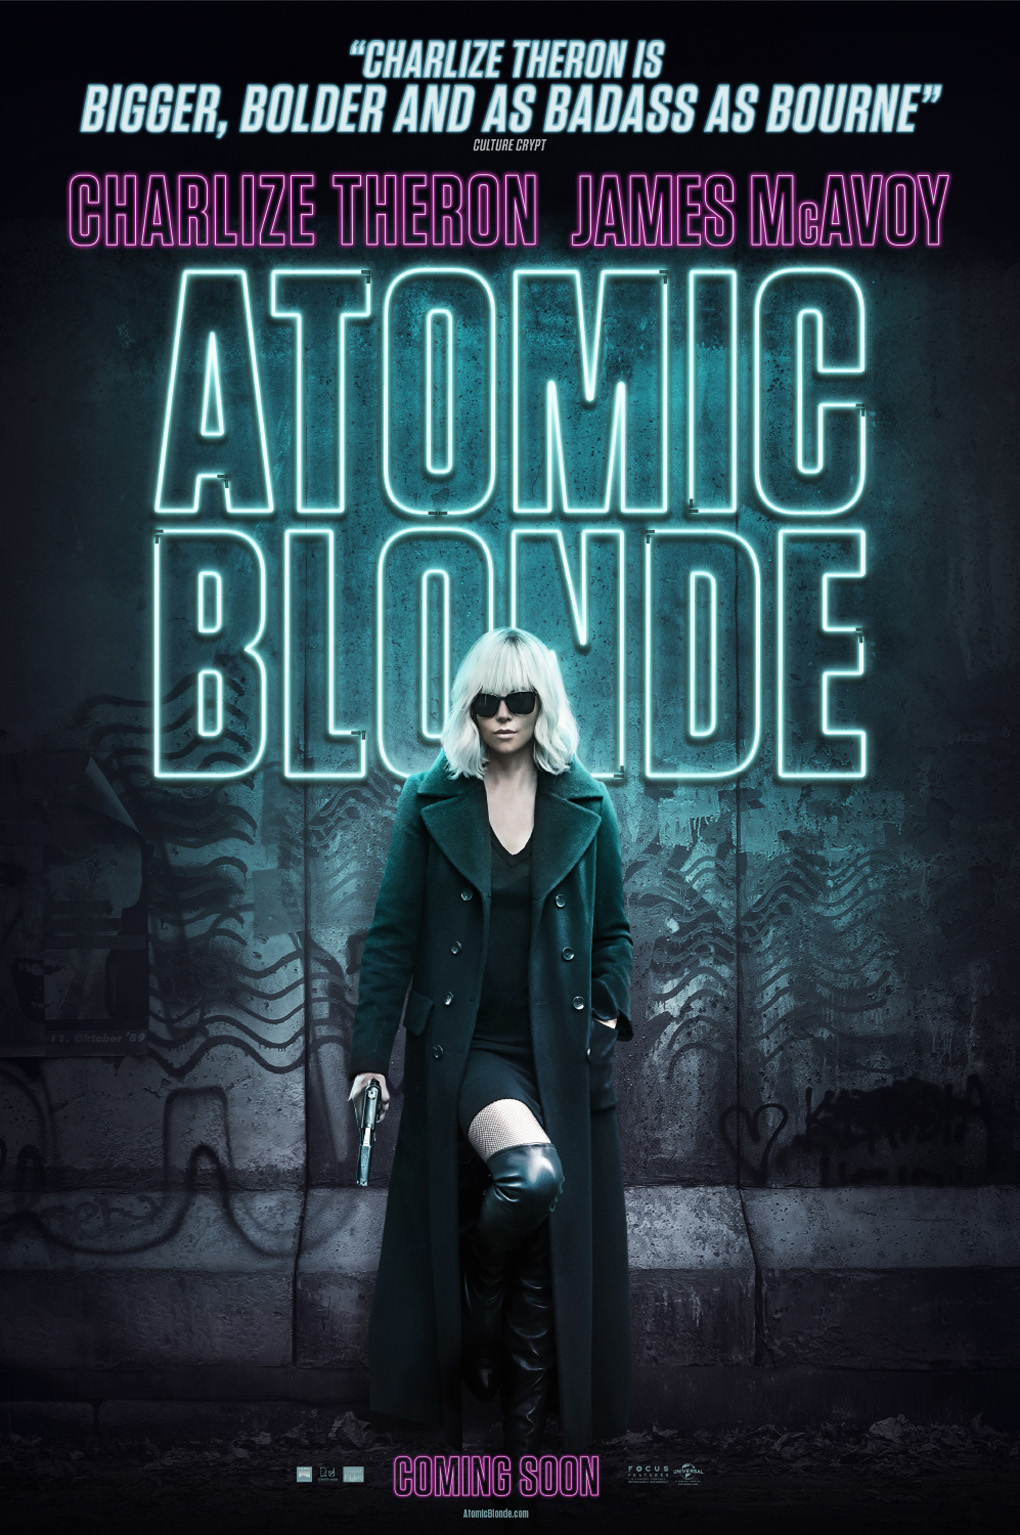 'Atomic Blonde': Charlize Theron stars in Hyperkinetic Action Film